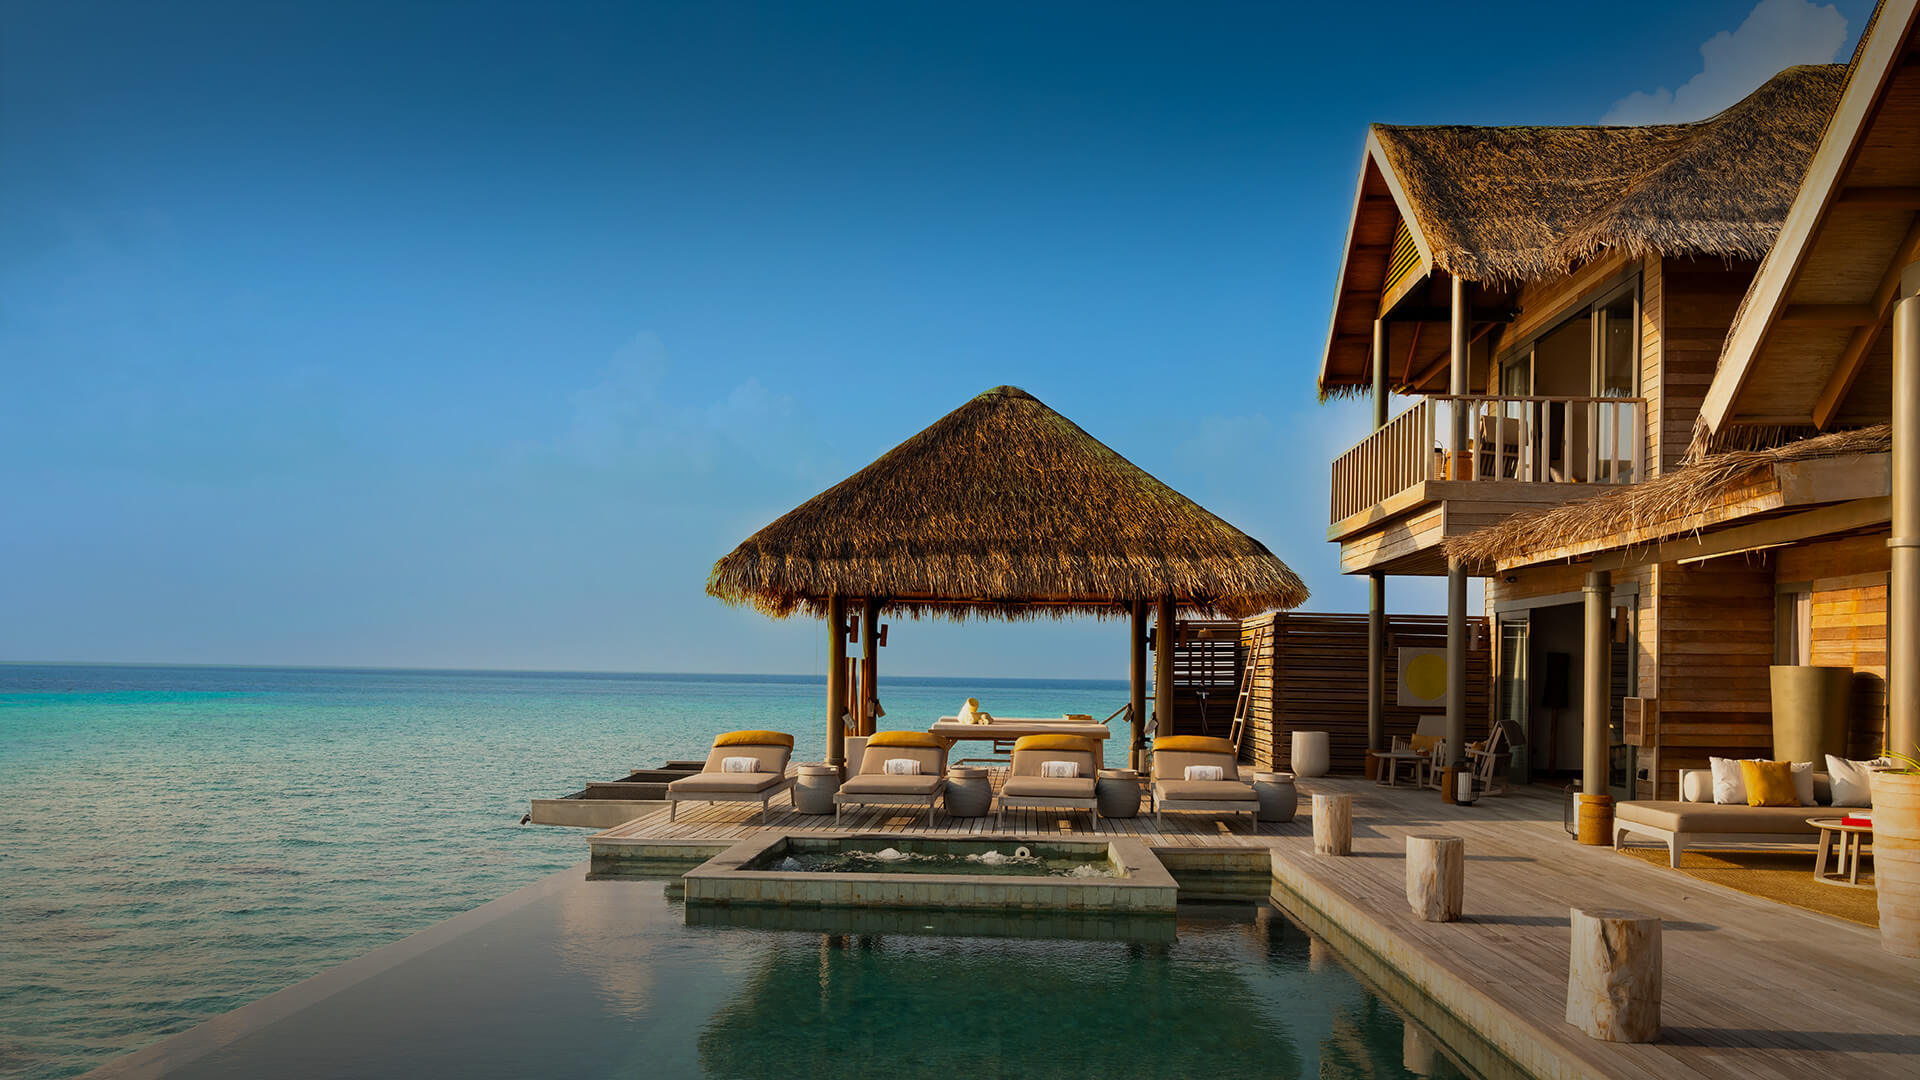 Two-story over water residence at Vakkaru Resort Maldives